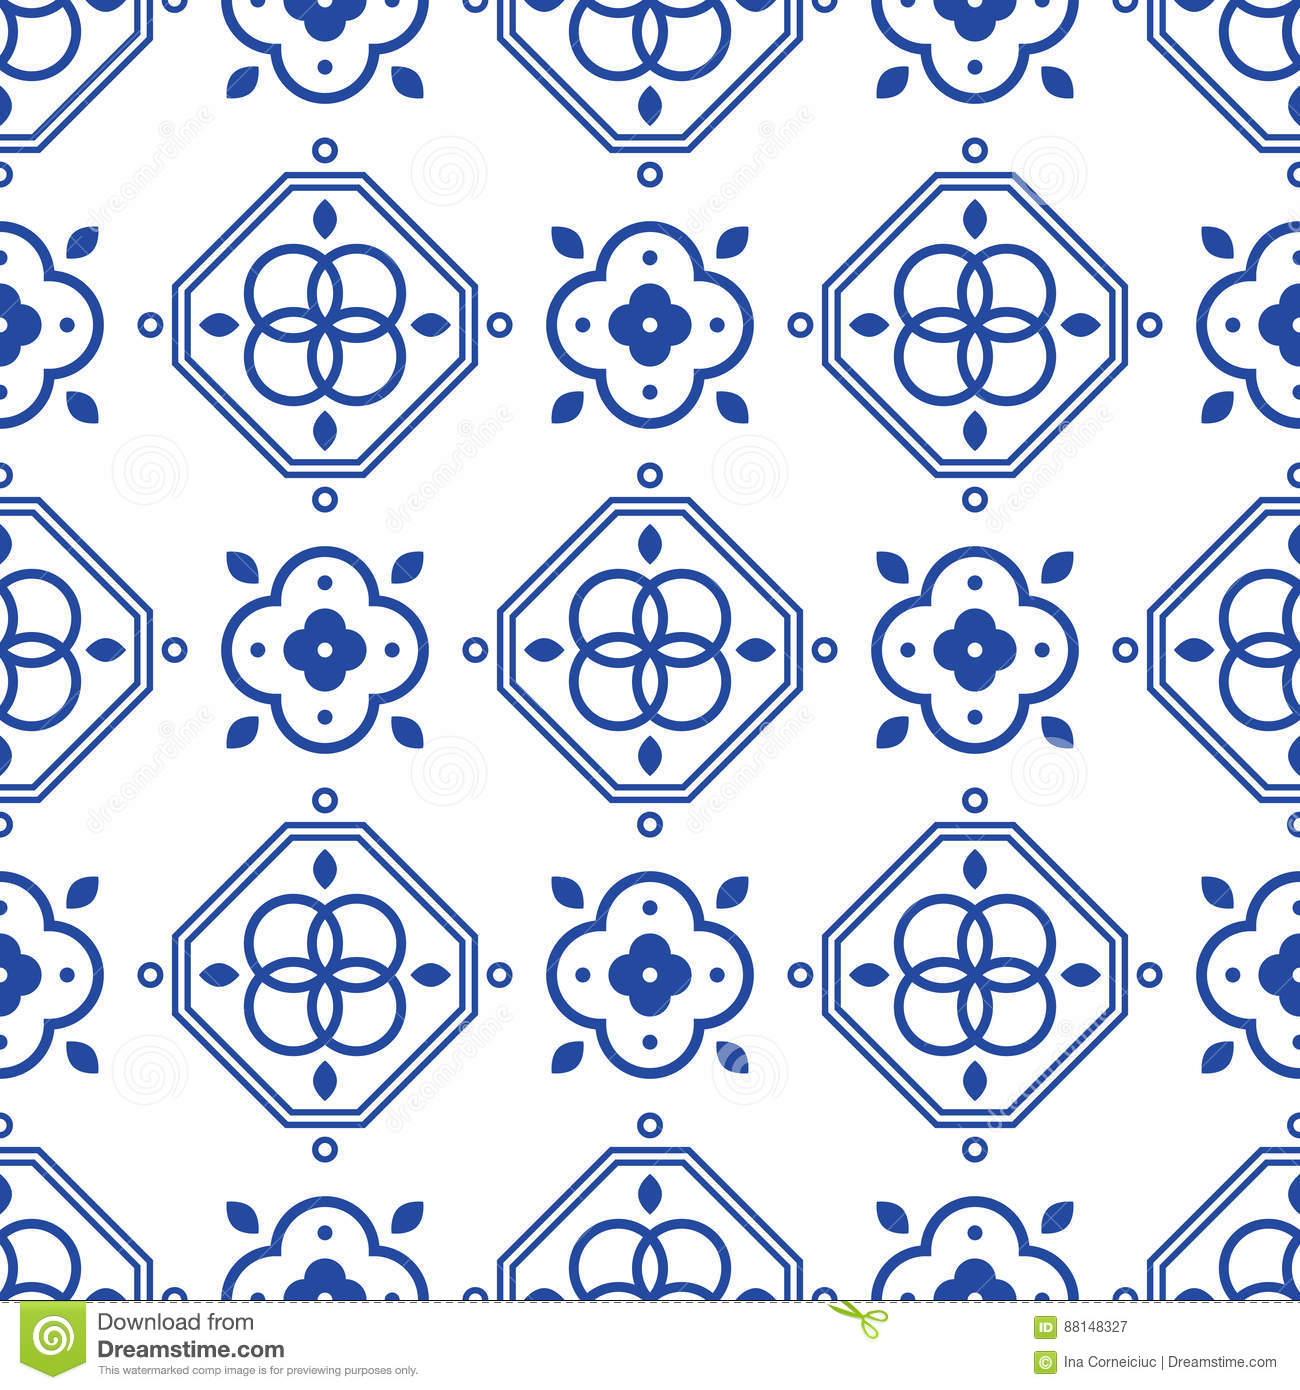 Blue And White Portugeese Mediterranean Seamless Tile Pattern. Stock ...